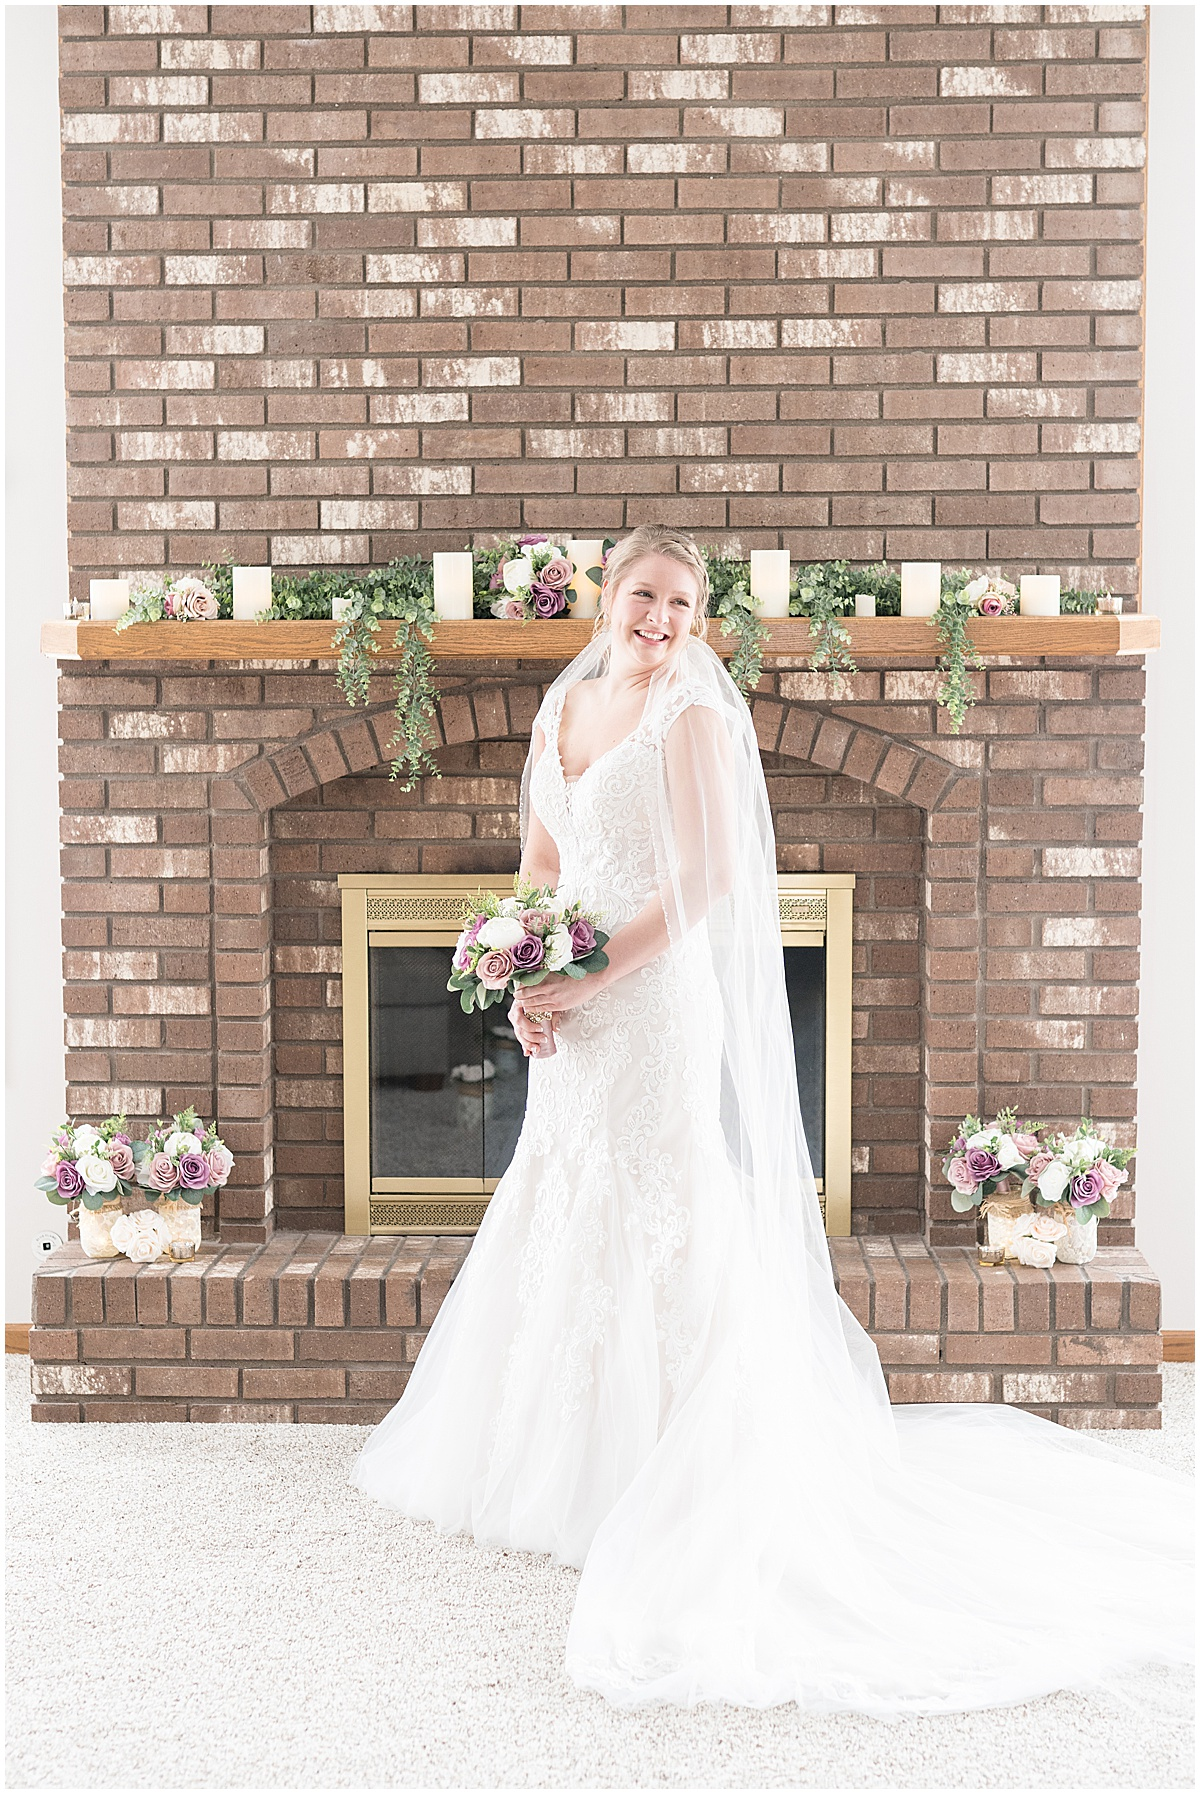 Bridal portraits in living room prior to at-home, socially distanced wedding in Tinley Park, Illinois